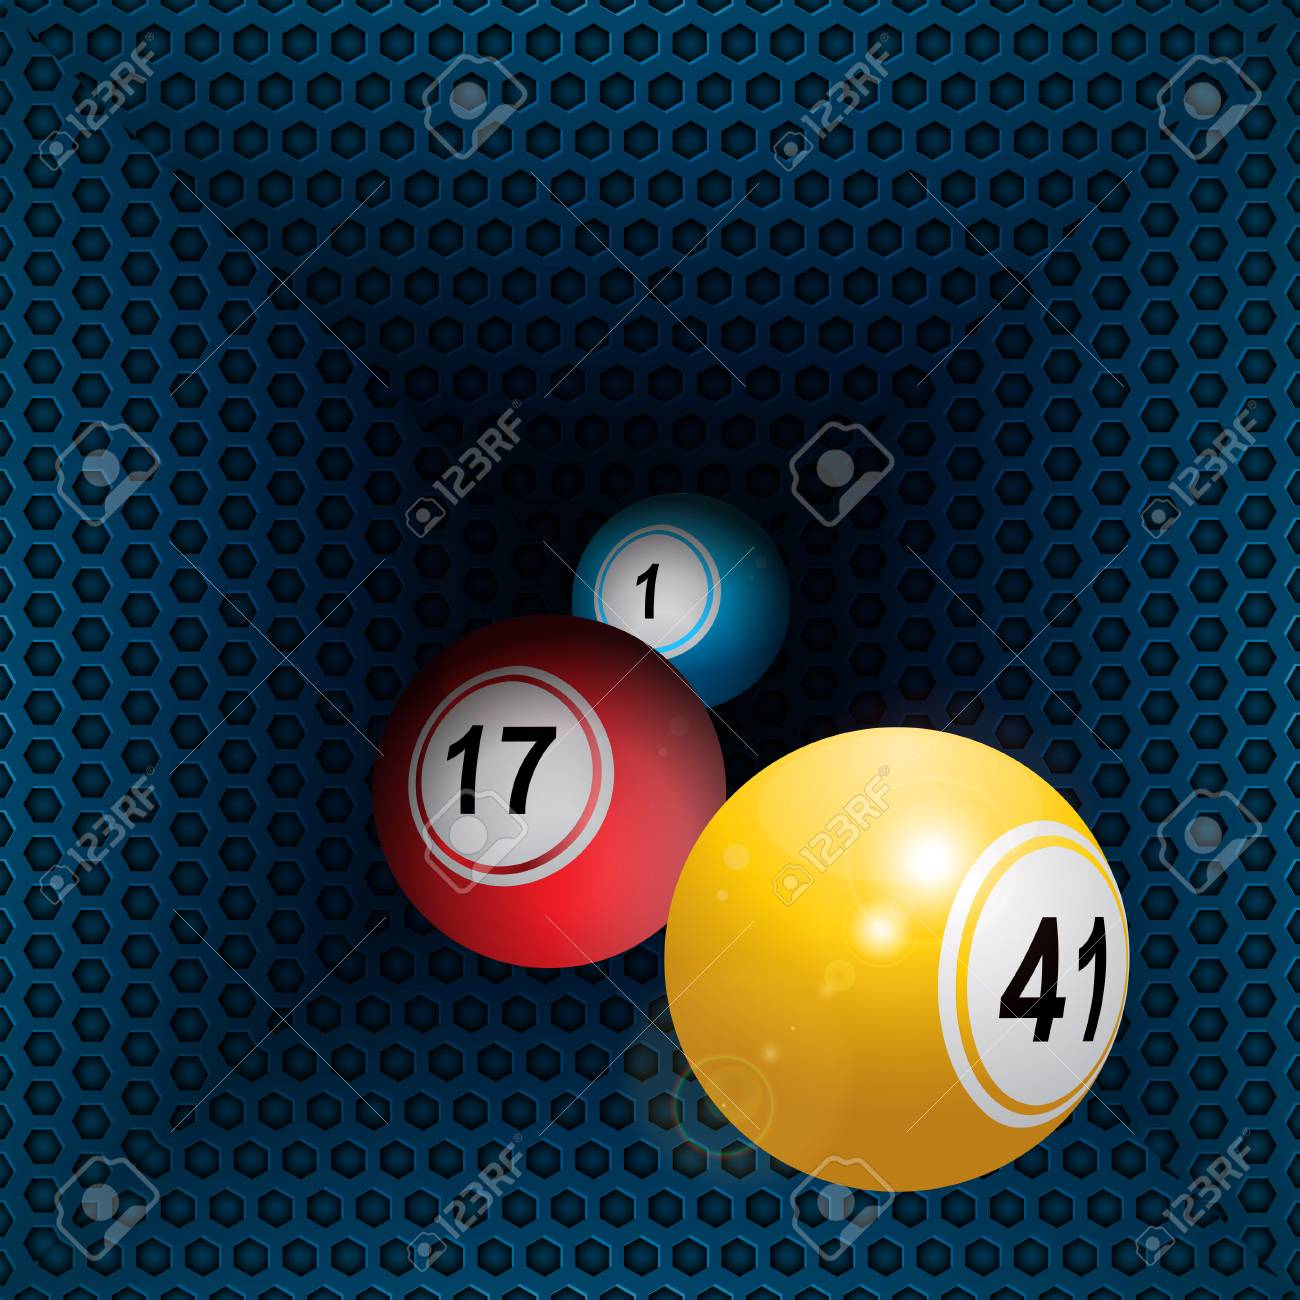 Three D Bingo Balls Rolling Out From Metallic Honeycomb Tunnel - Honeycomb pool table